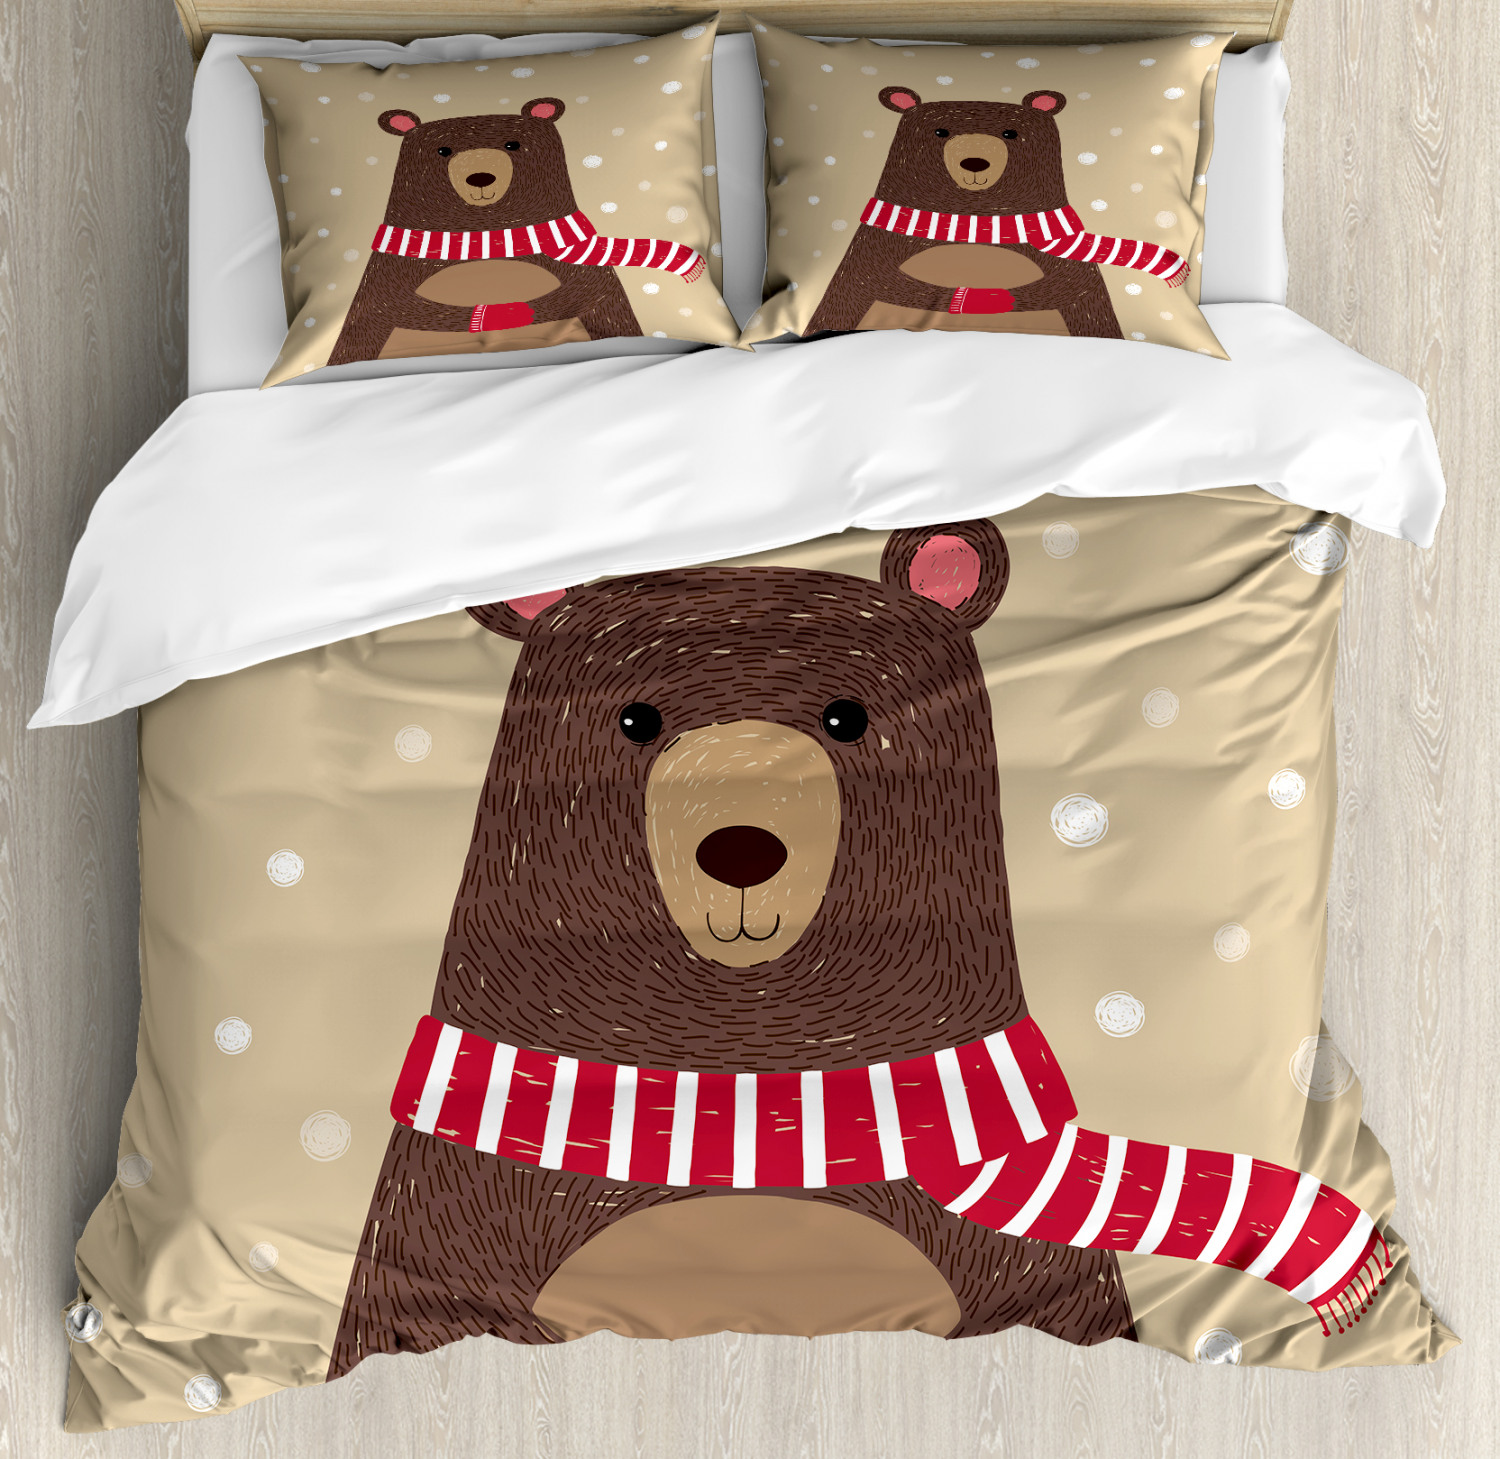 Doodle Duvet Cover Set with Pillow Shams Cute Bear rosso Scarf Print